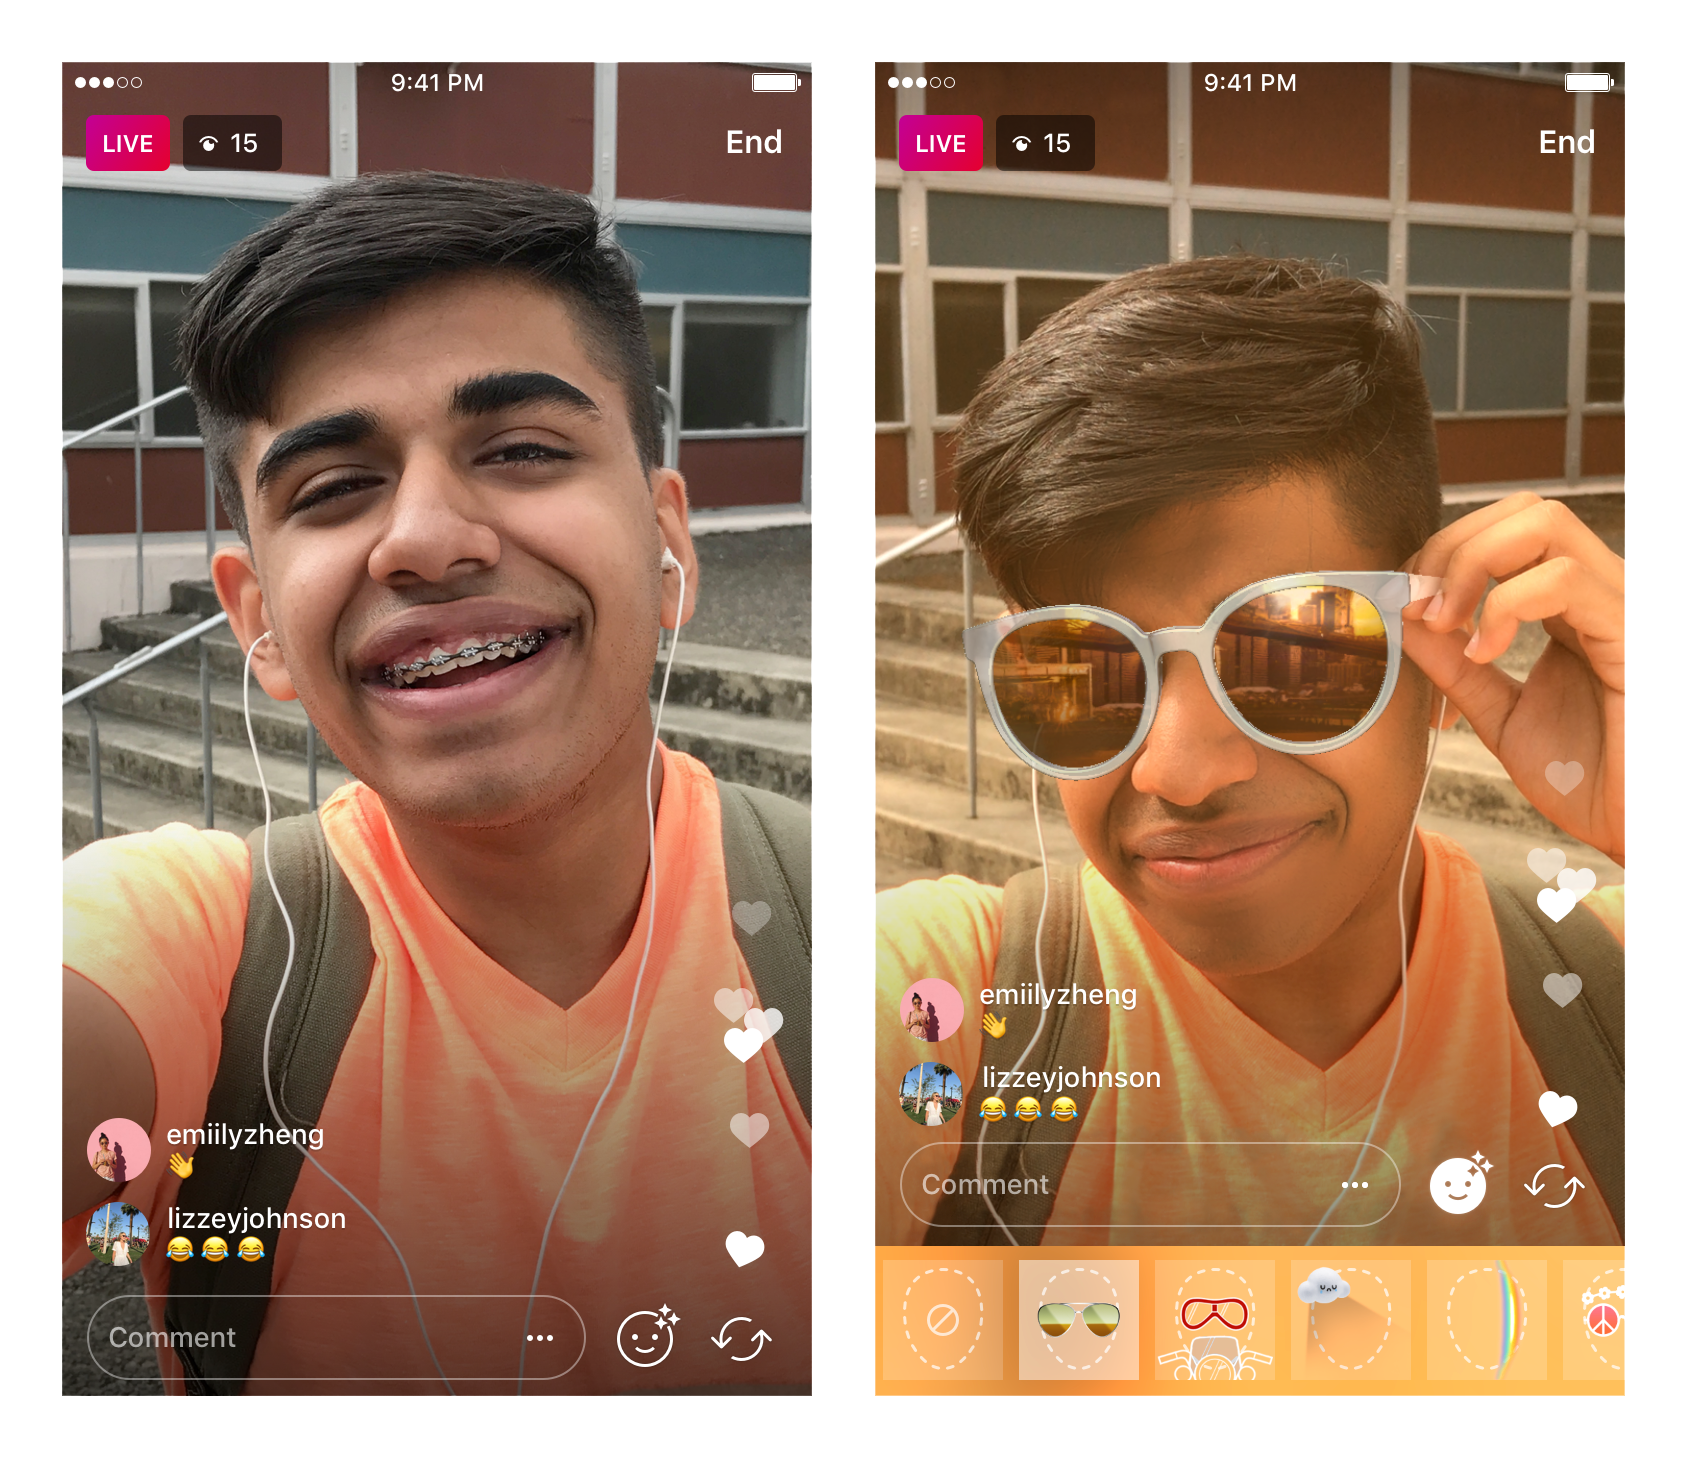 Transparent live instagram. Introducing face filters in